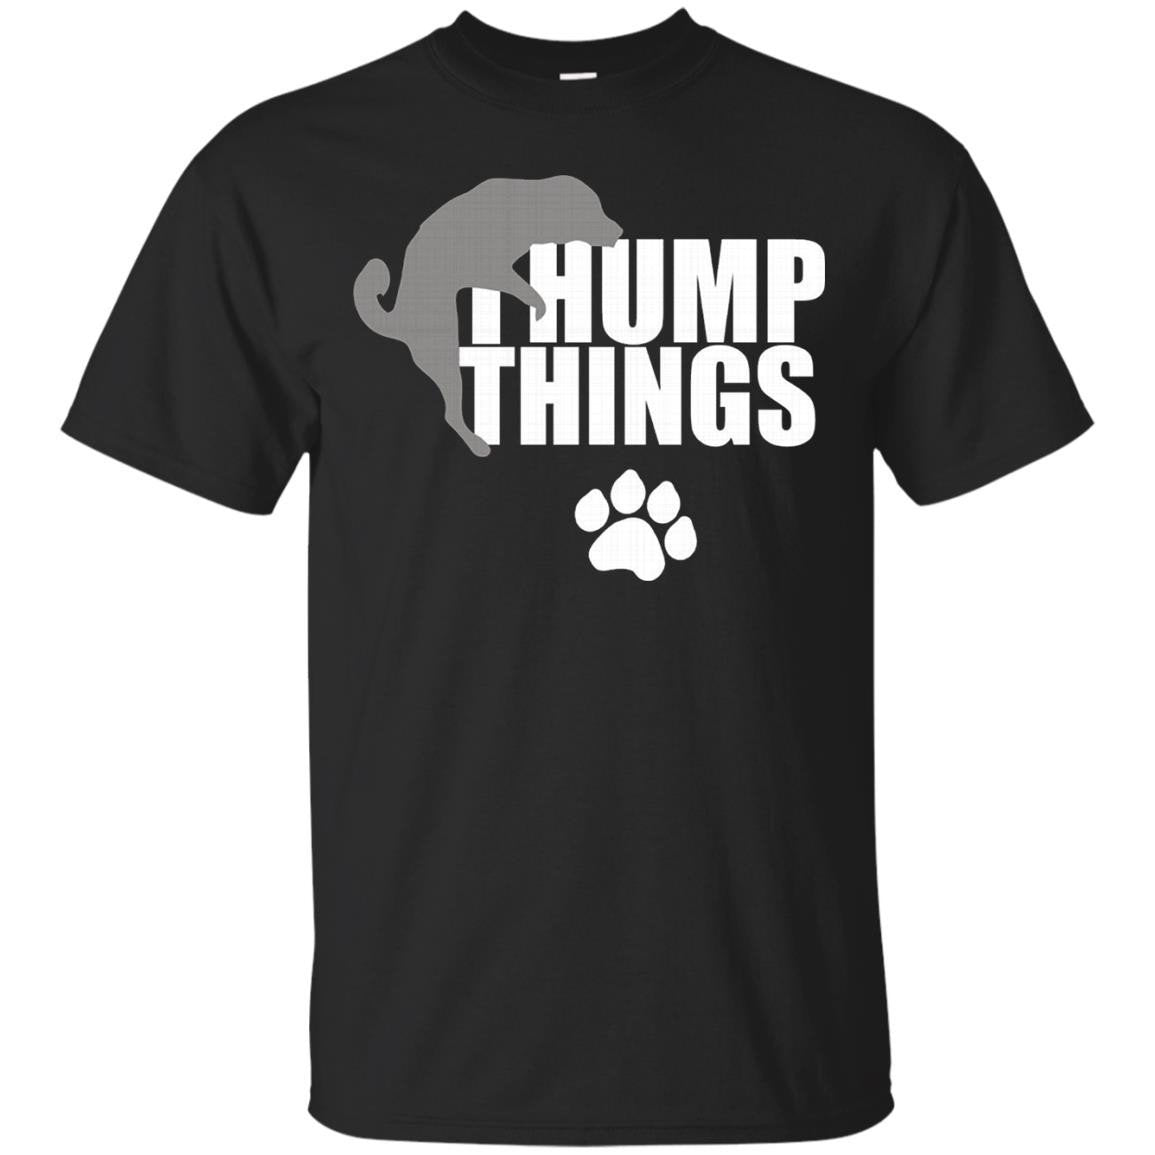 I Hump Things - Doggy Style - Puppy Play Tees - T-Shirt